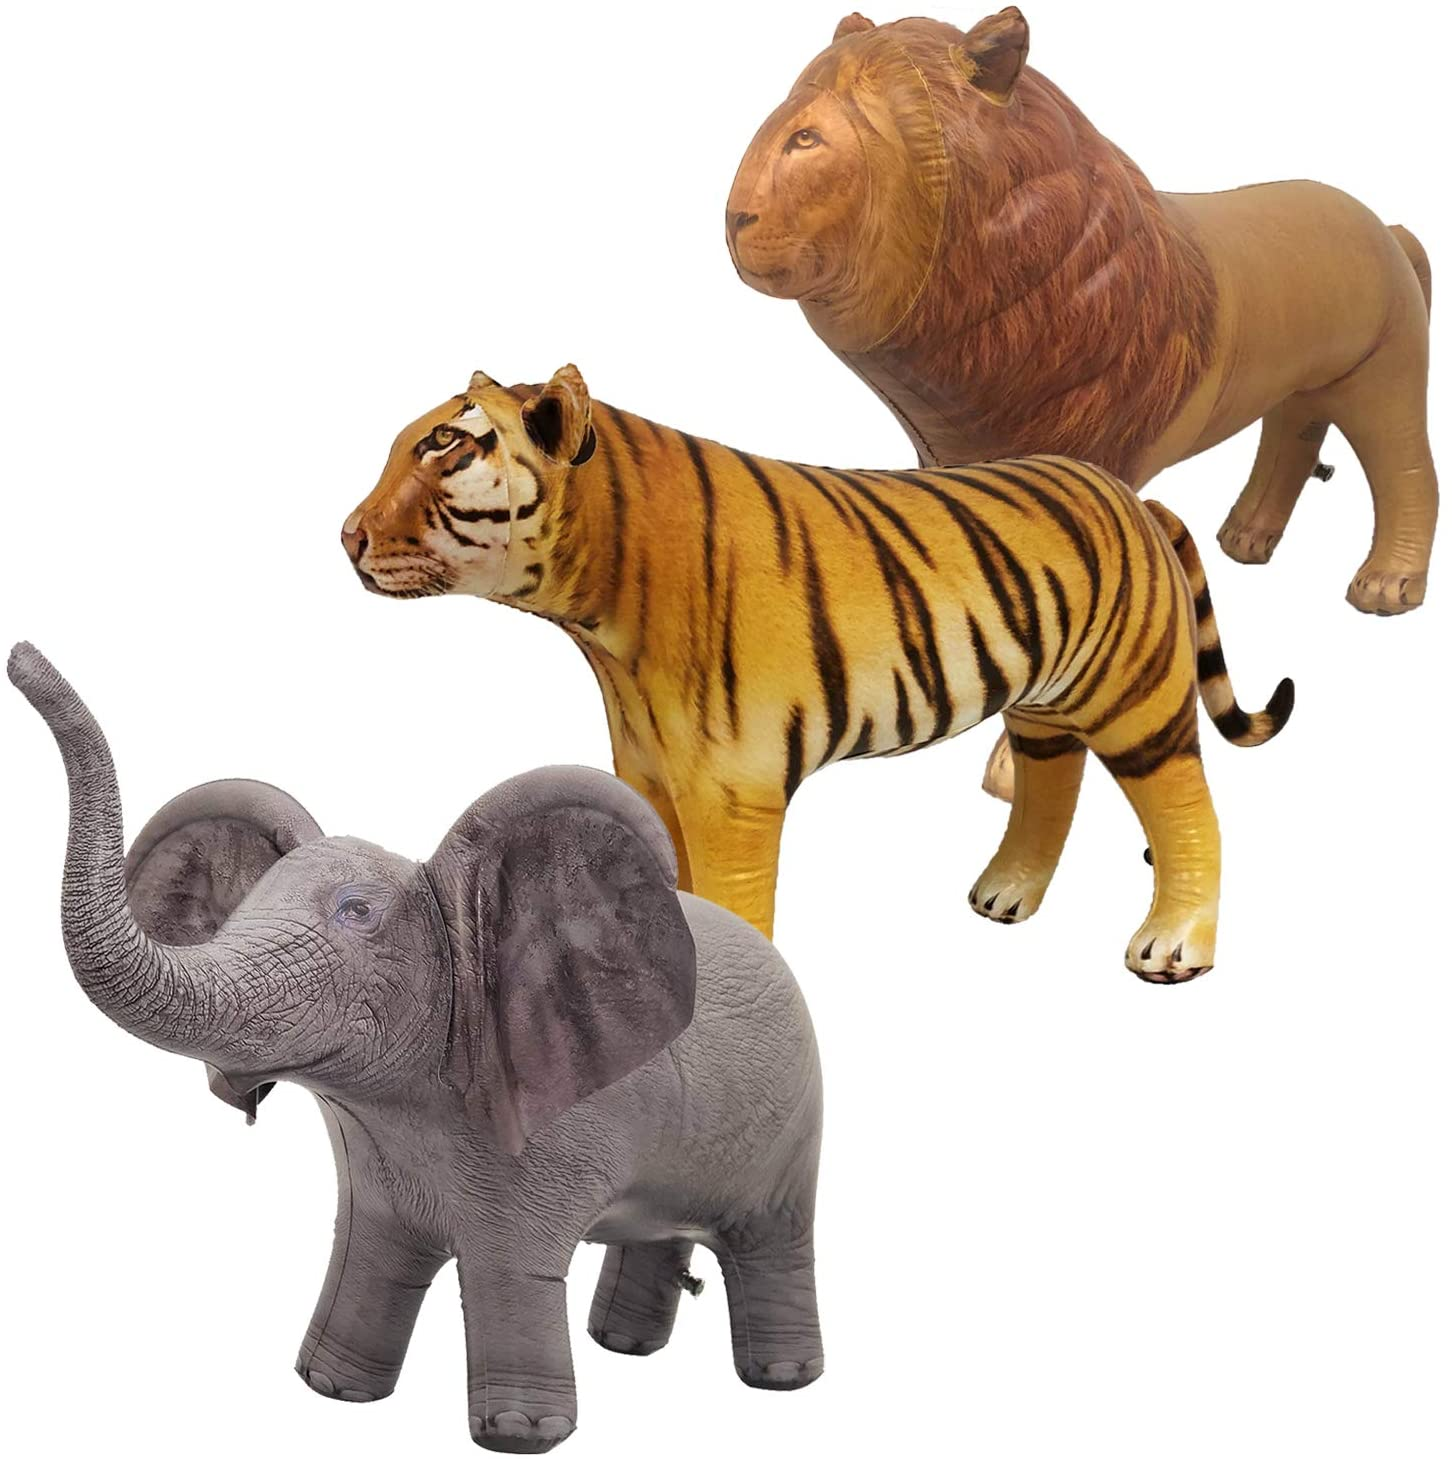 Jet Creations Safari 3 Pack Lion Tiger Elephant Inflatable Air Stuffed Plush Animal Great for Pool, Party Decoration Toys and Gifts, Size 36 to 40 inch, JC-LTE